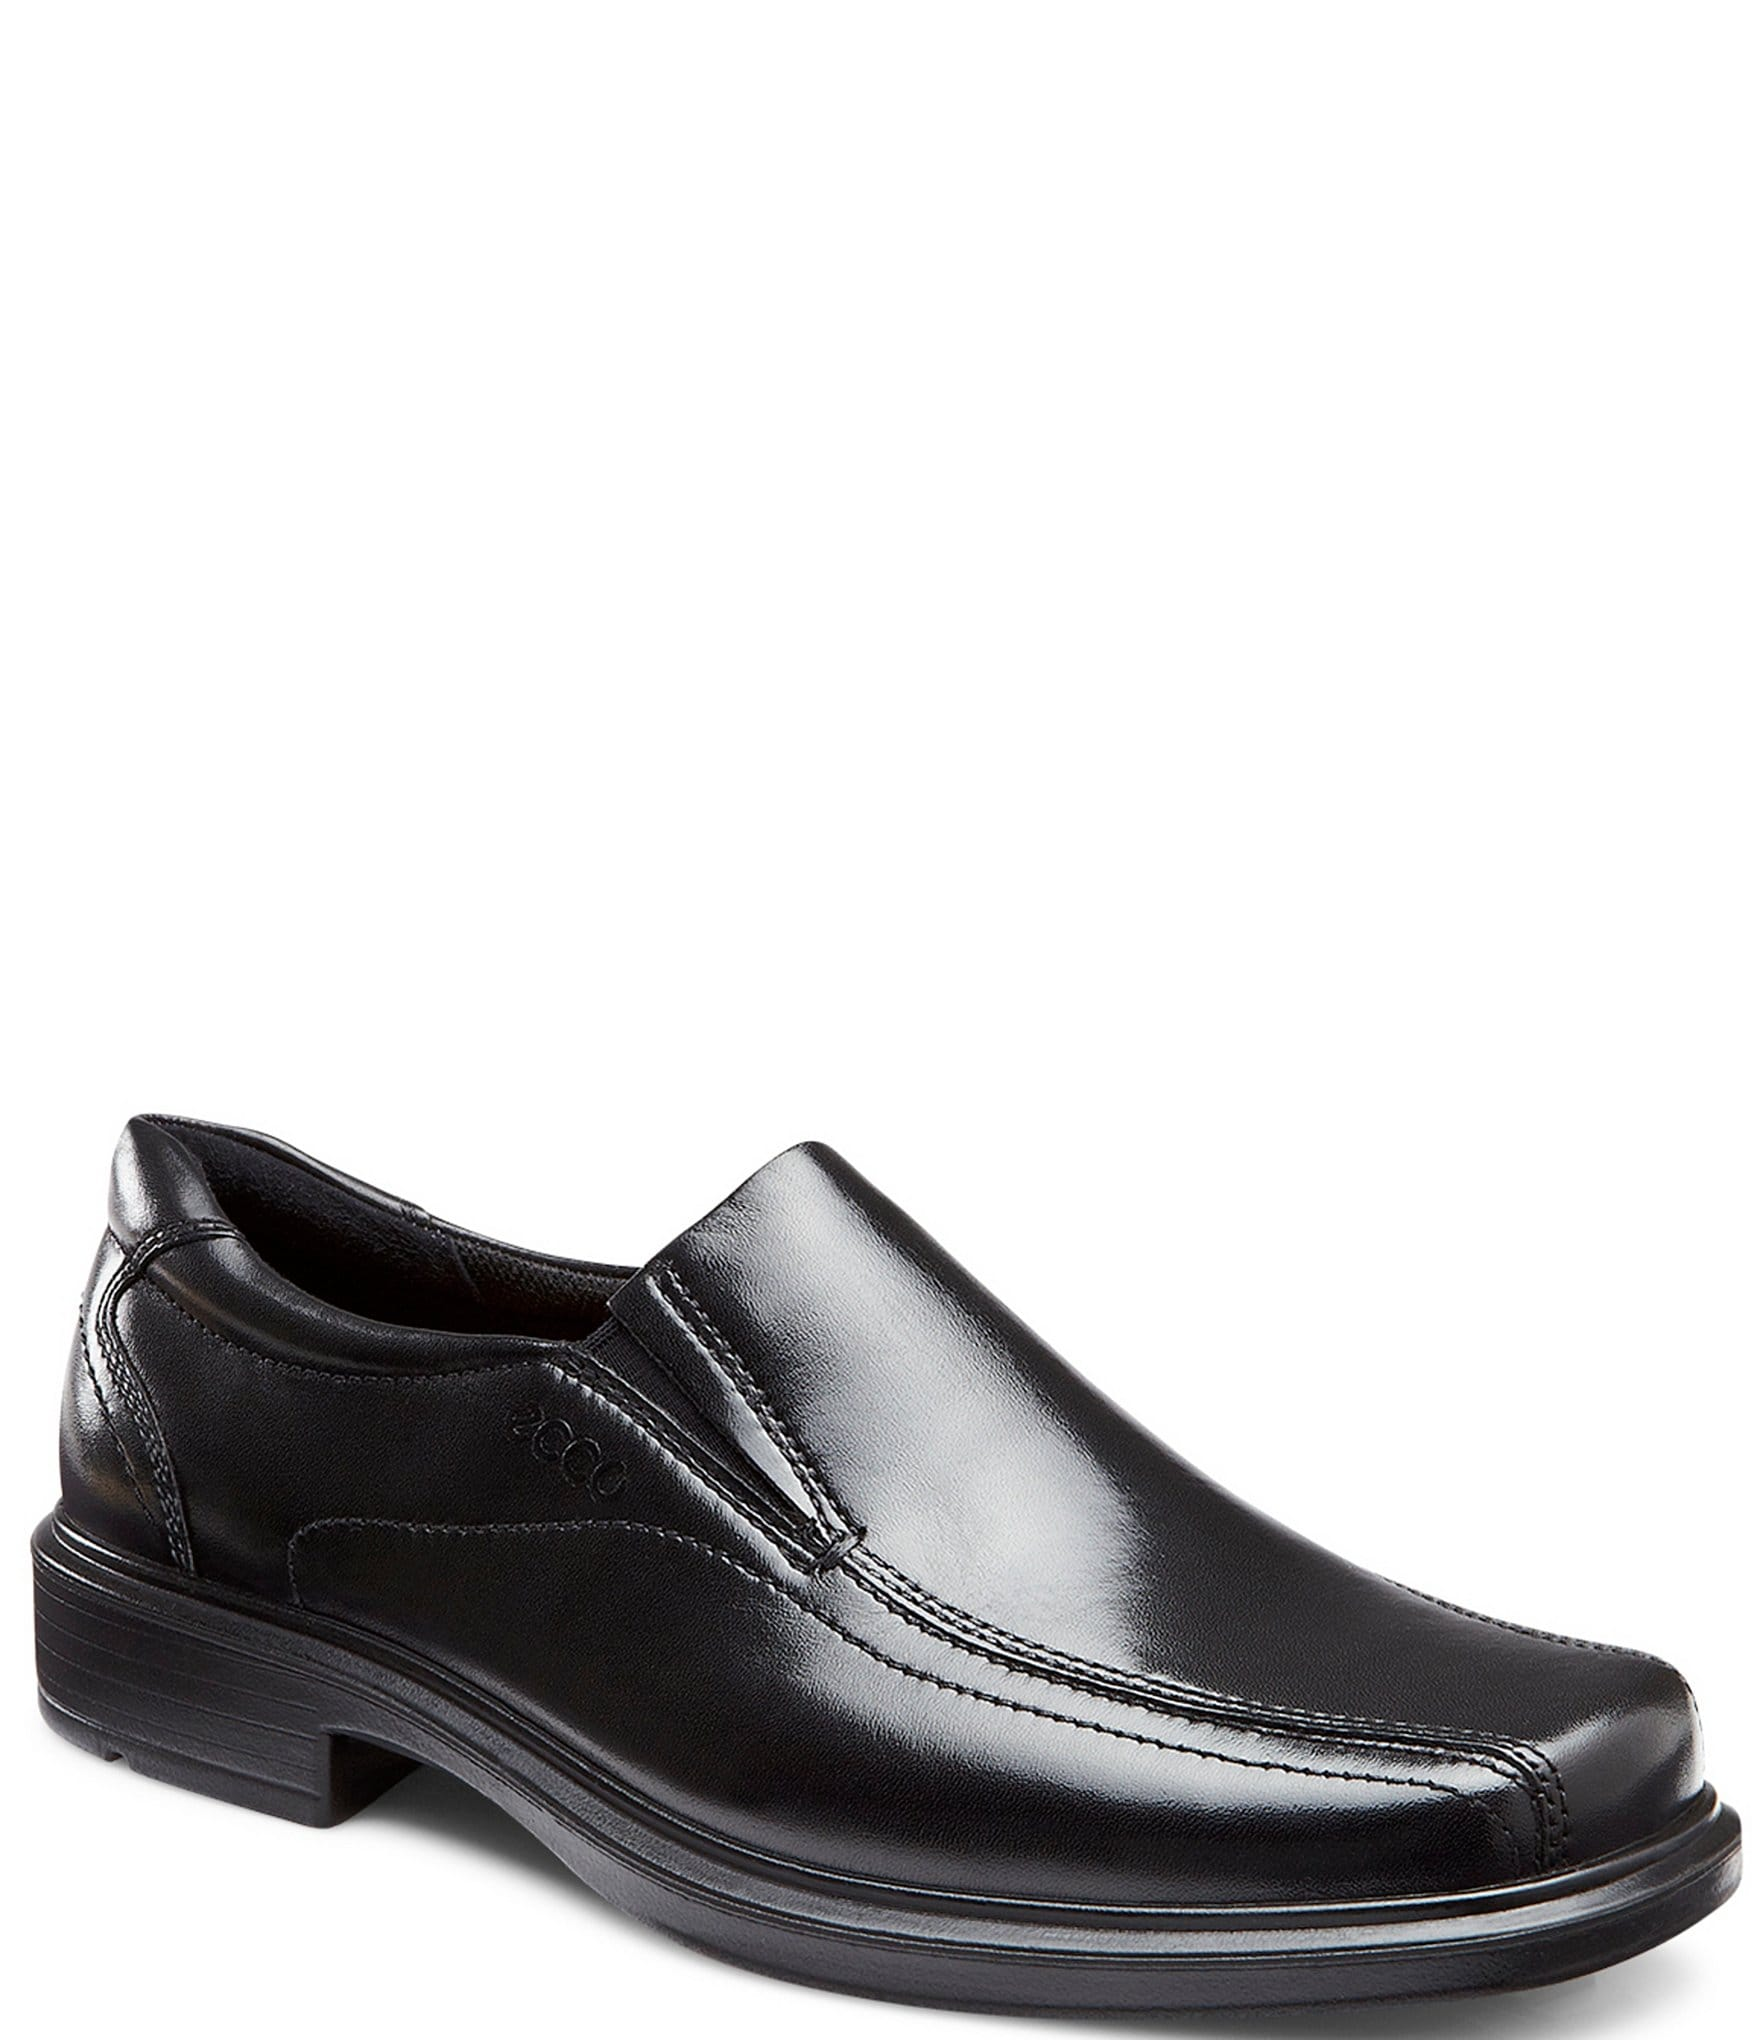 58a7526c59 Men's Shoes | Dillard's